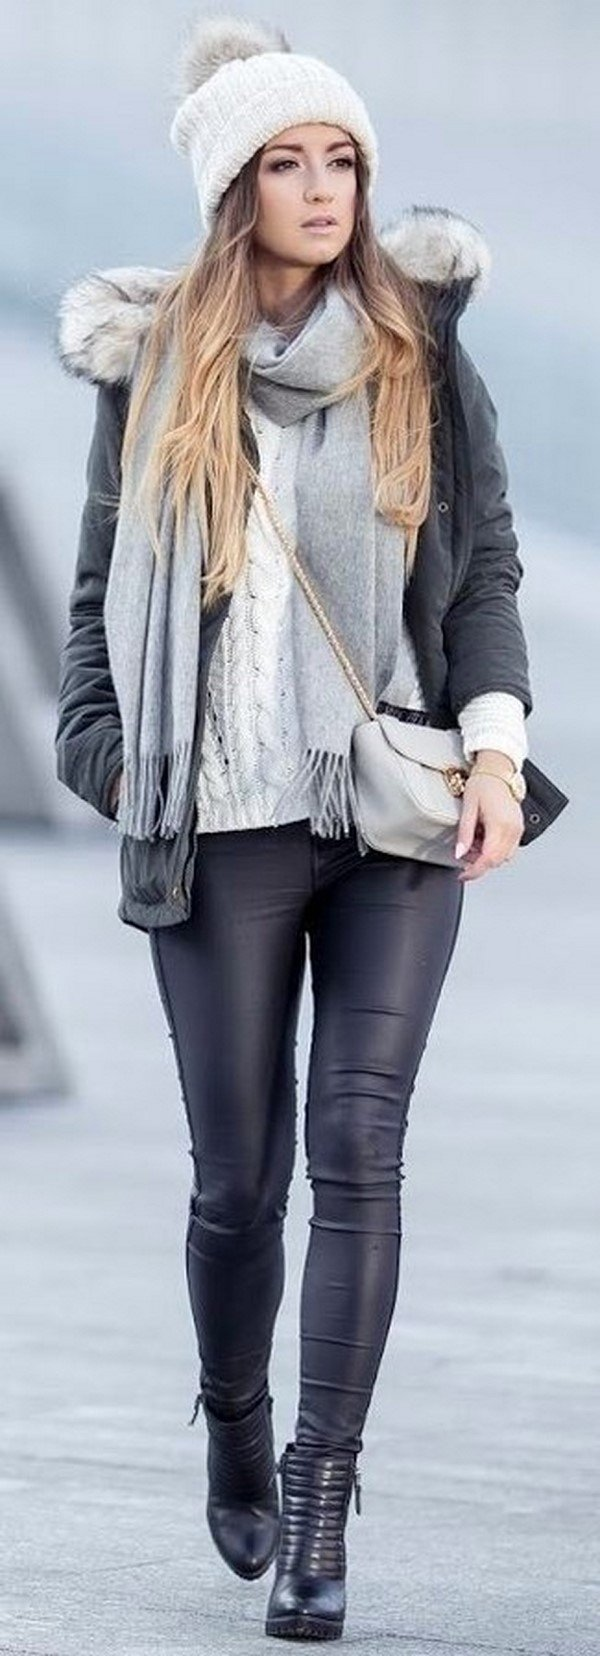 winter outfits for women